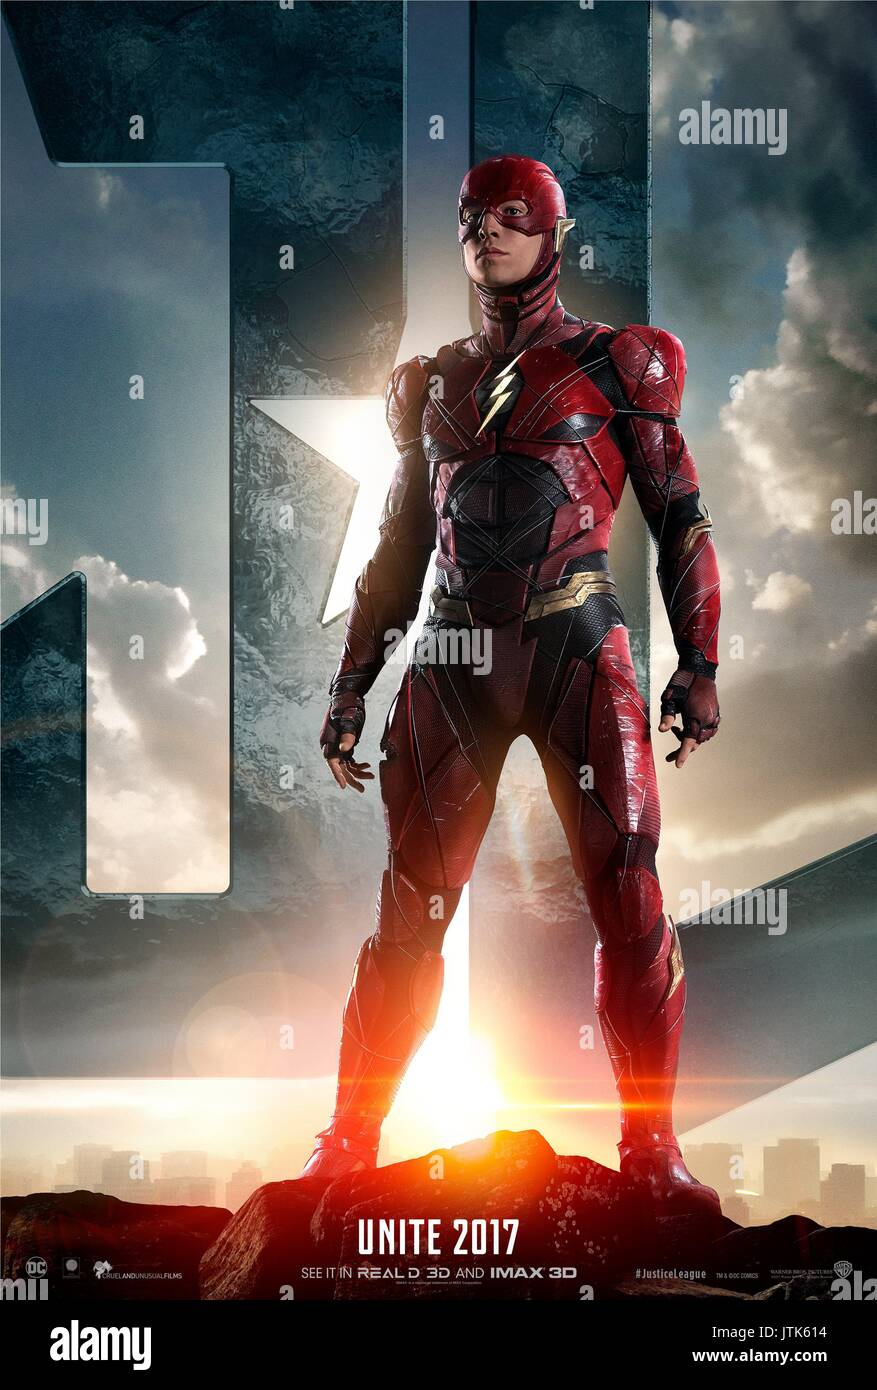 RELEASE DATE: November 17, 2017 TITLE: Justice League STUDIO: DC Entertainment DIRECTOR: Zack Snyder PLOT: Fueled by his restored faith in humanity and inspired by Superman's selfless act, Bruce Wayne enlists the help of his newfound ally, Diana Prince, to face an even greater enemy. STARRING: Ezra Miller as Barry Allen / The Flash (Credit Image: © DC Entertainment/Entertainment Pictures) - Stock Image